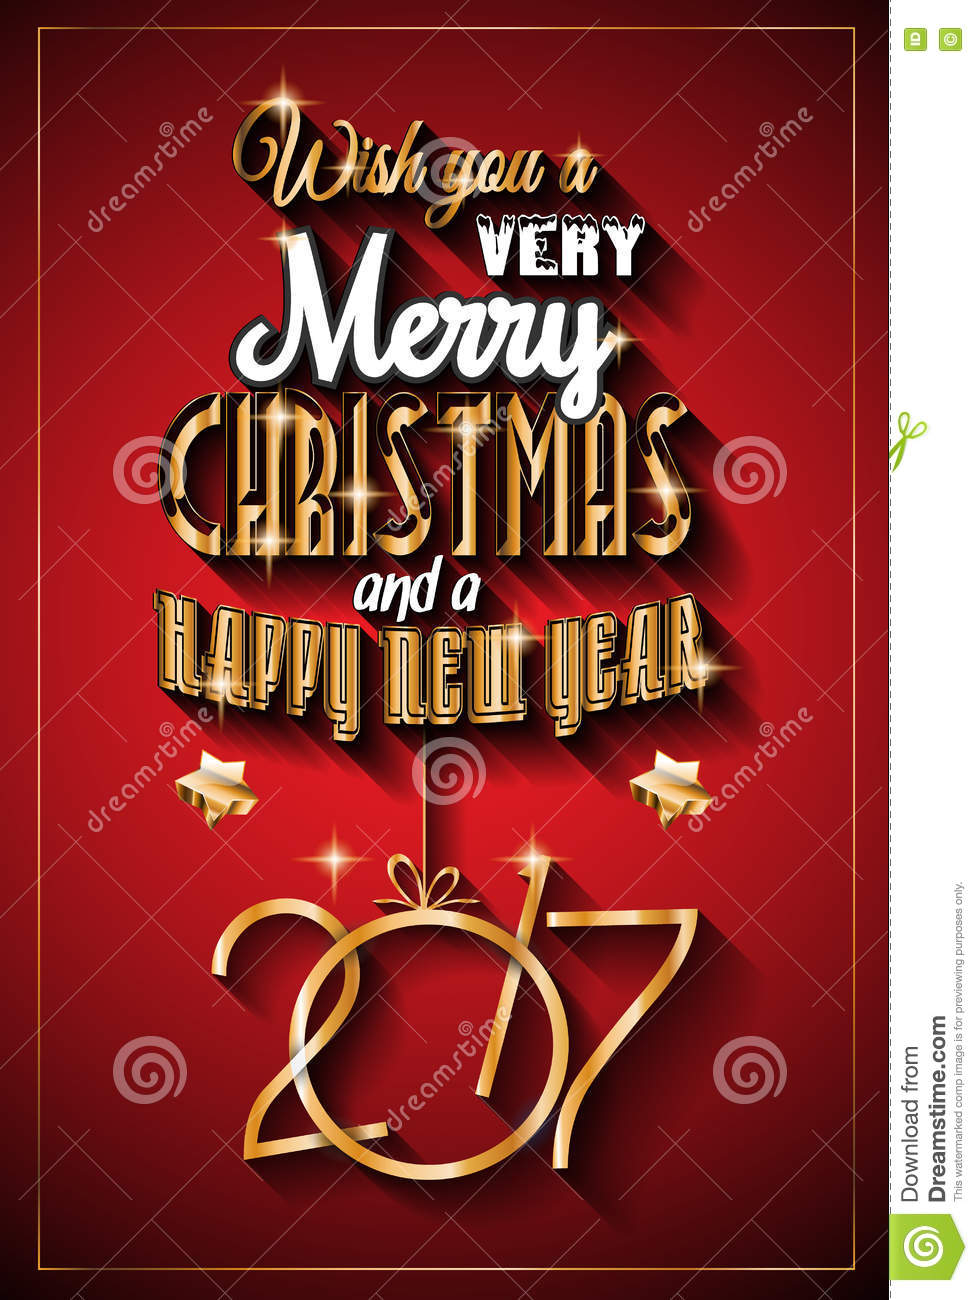 2017 happy new year restaurant menu template for your seasonal flyers